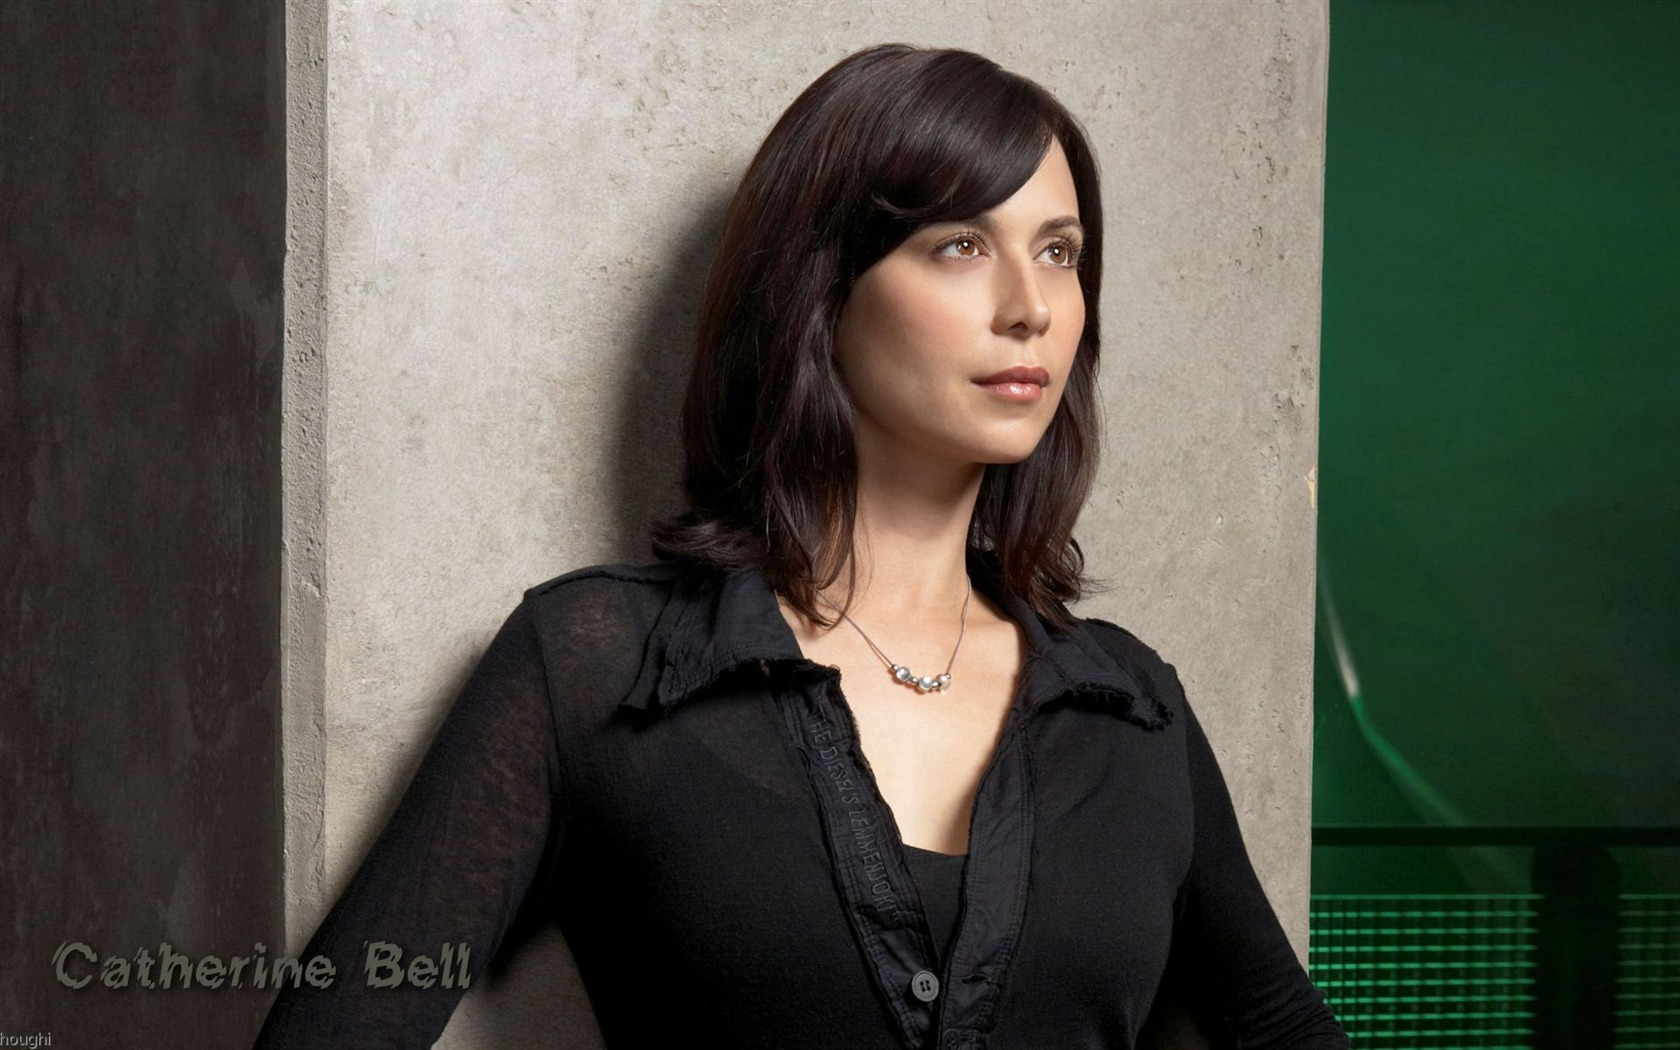 Catherine Bell #020 - 1680x1050 Wallpapers Pictures Photos Images